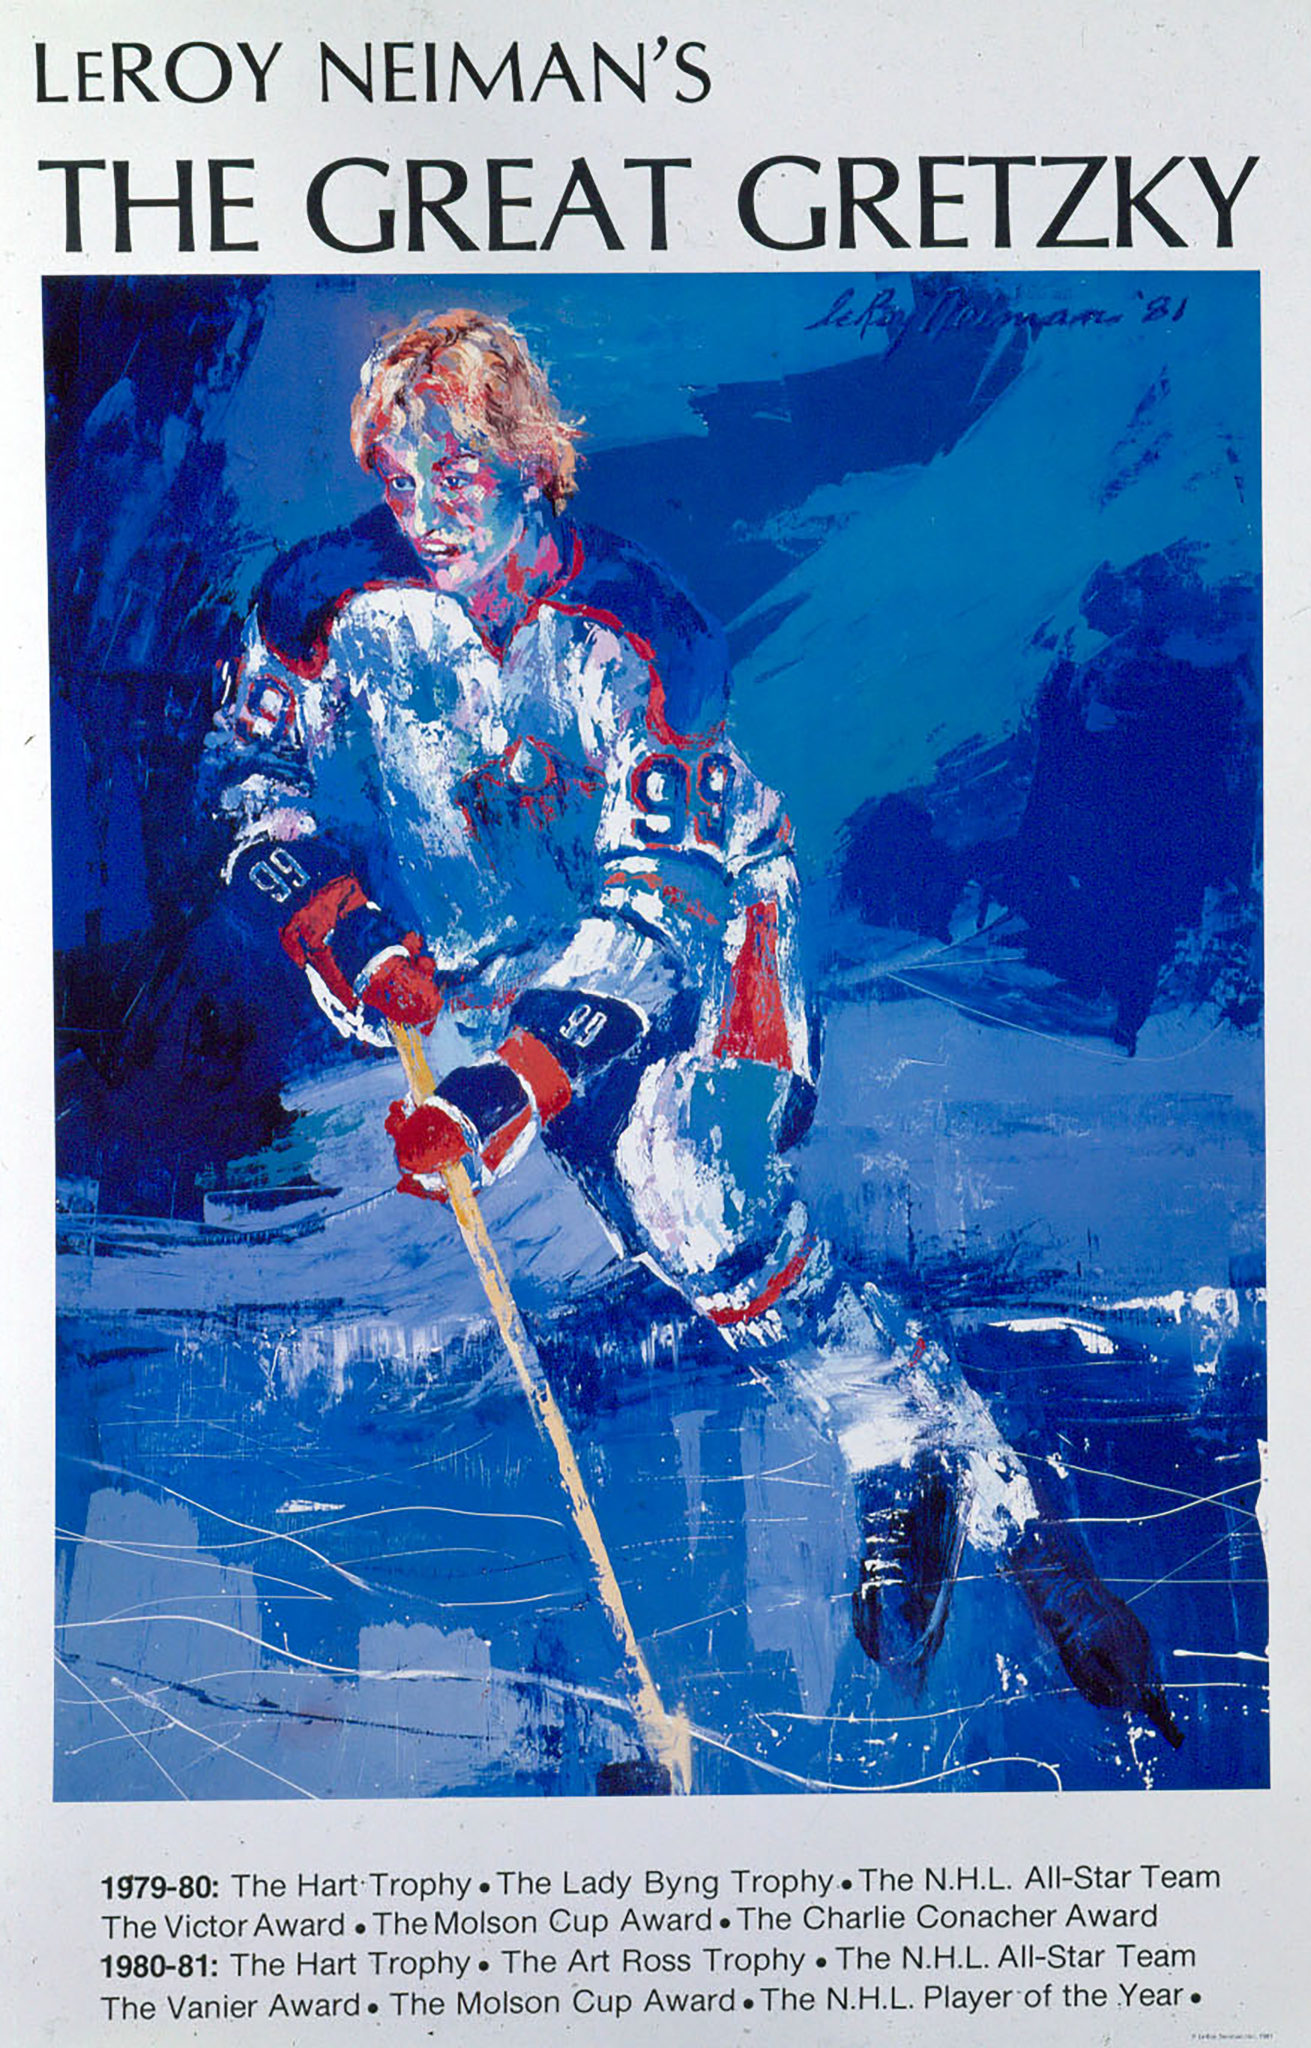 The Great Gretzky poster